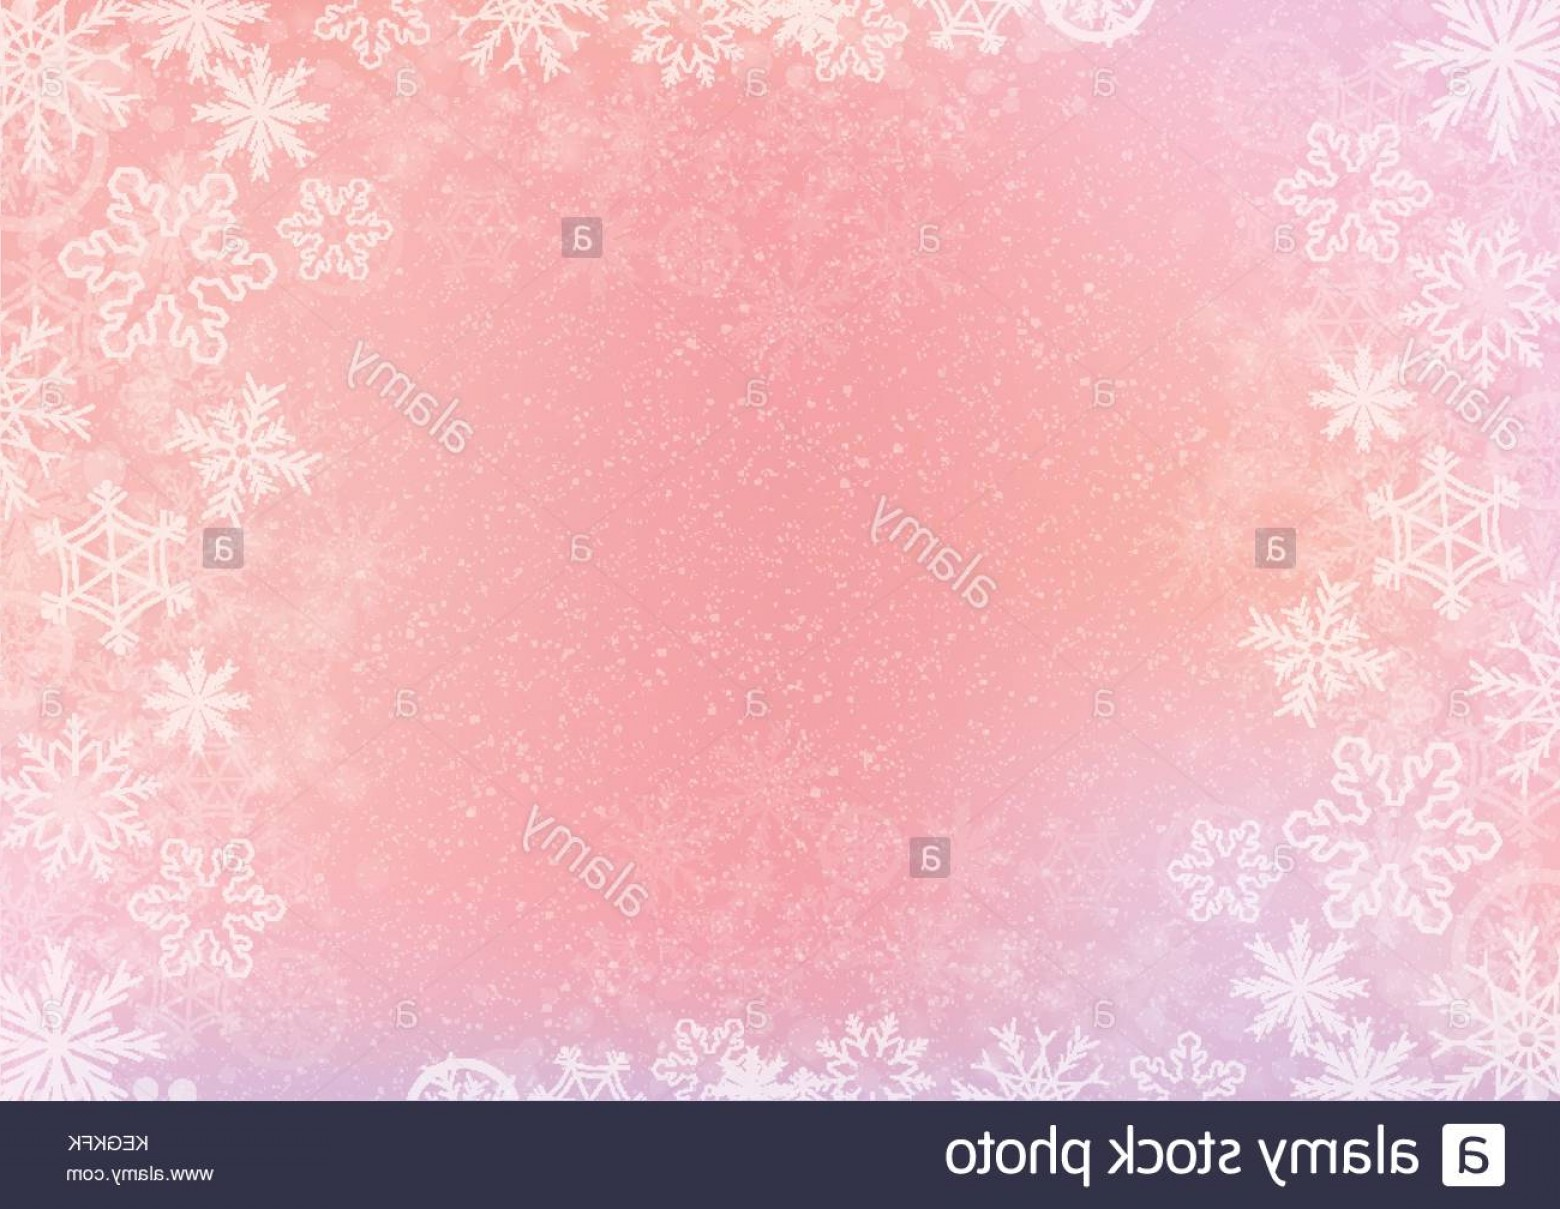 Snowflake Border Vector Art: Stock Photo The Pink Elegant Winter Background With The Snowflake Border